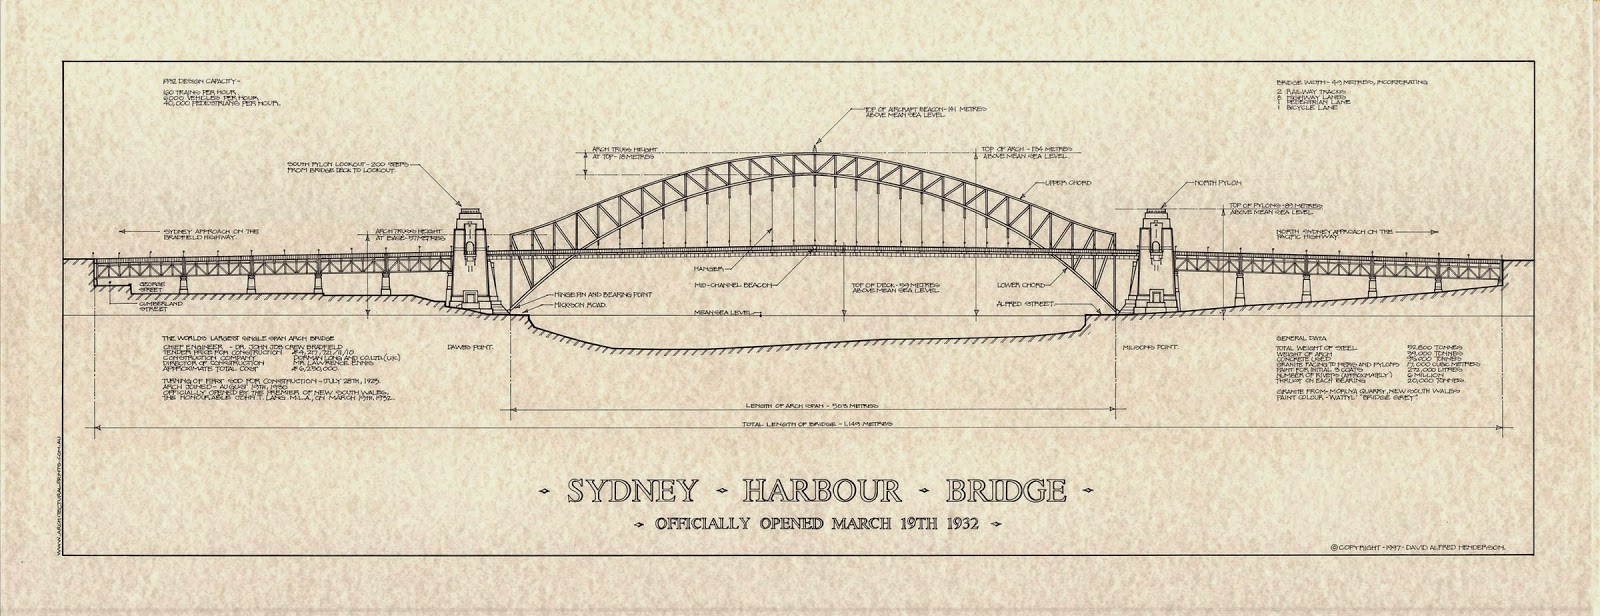 Every Day Is Special March 19 Sydney Harbor Bridge Bald Eagle Anatomy Diagram Http Catherinecabrolcom 9 Baldeagle The Was Begun In July Of 1923 Finally August 1930 Two Halves Arch Touched Each Other